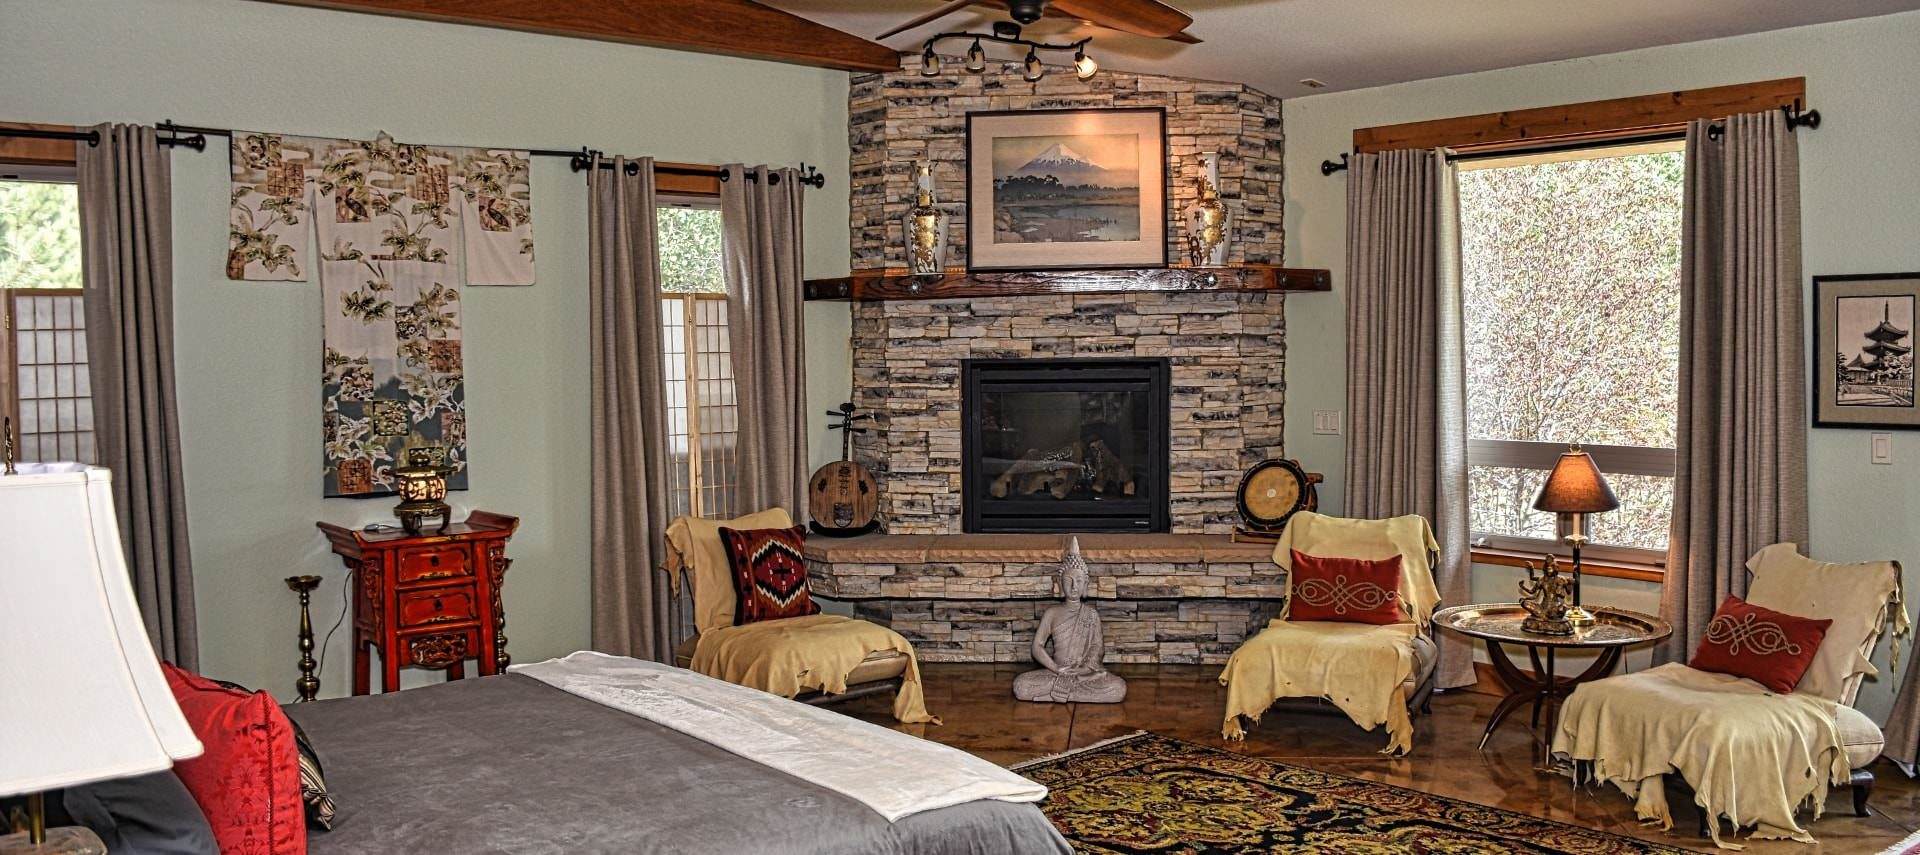 Large suite with bed and gray bedding, stone fireplace, multiple chairs, large area rug, and large windows